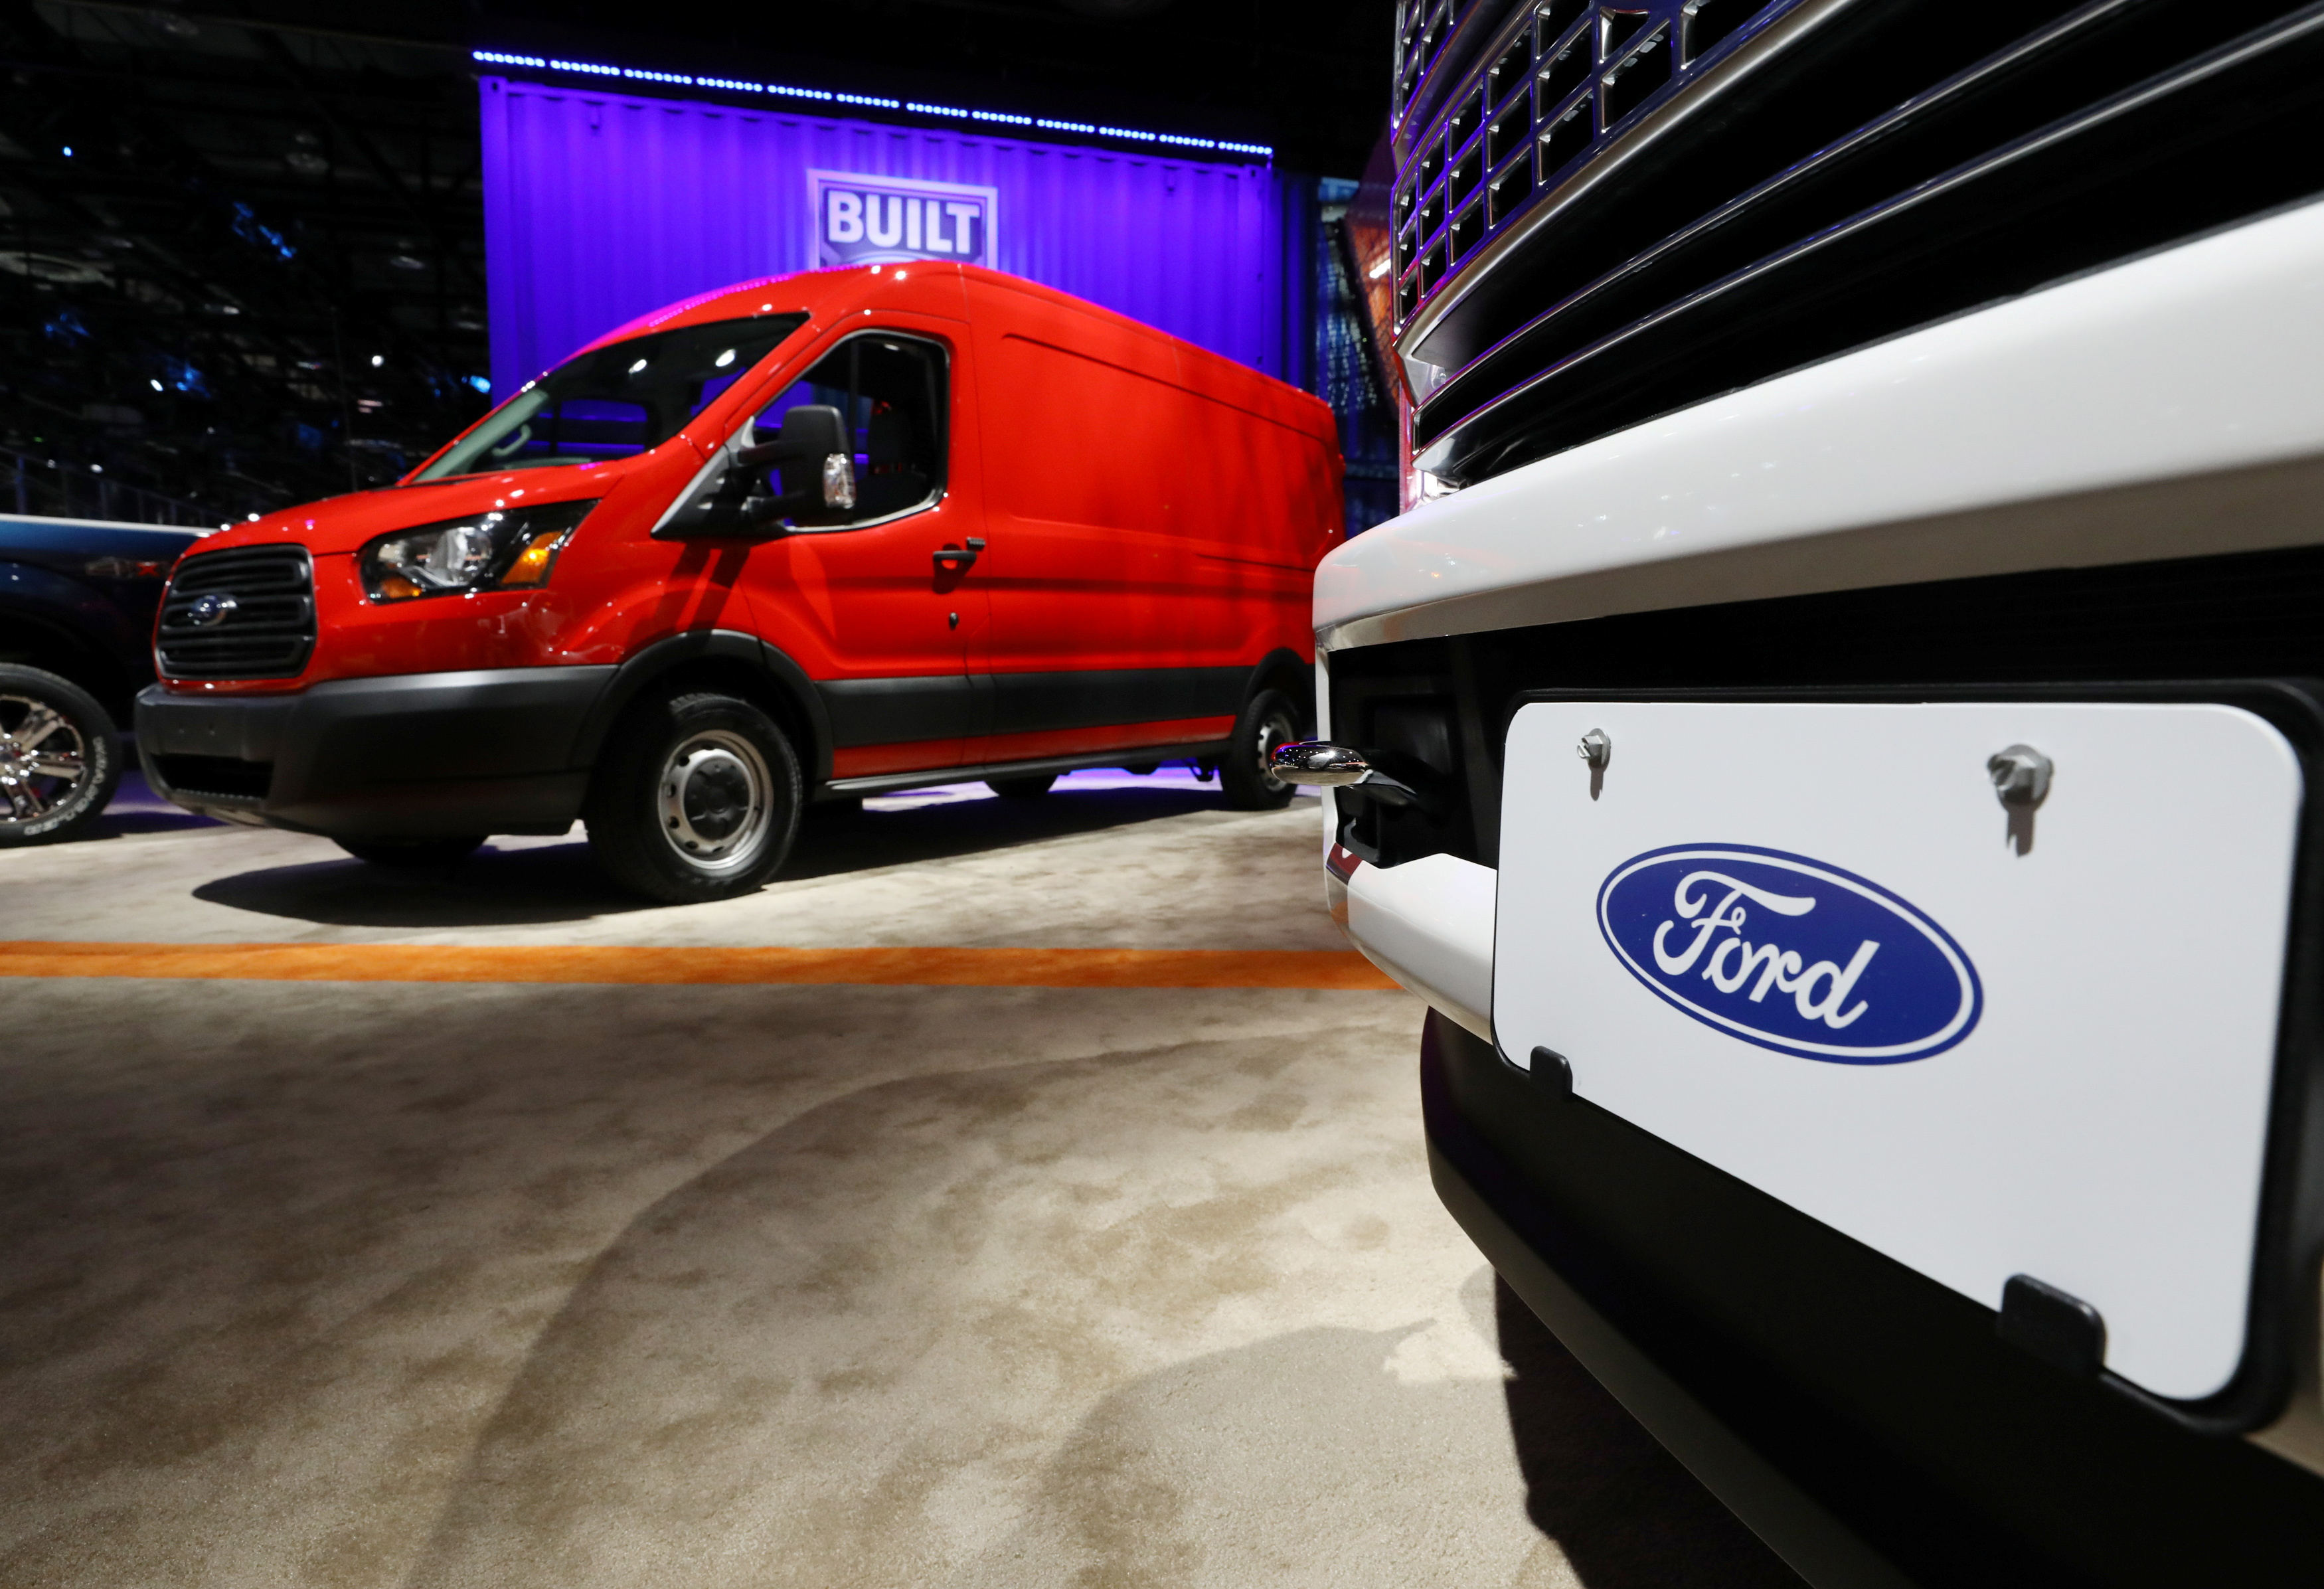 Ford truck models are displayed at the North American International Auto Show in Detroit, Michigan, U.S., January 15, 2019. REUTERS/Brendan McDermid/File Photo